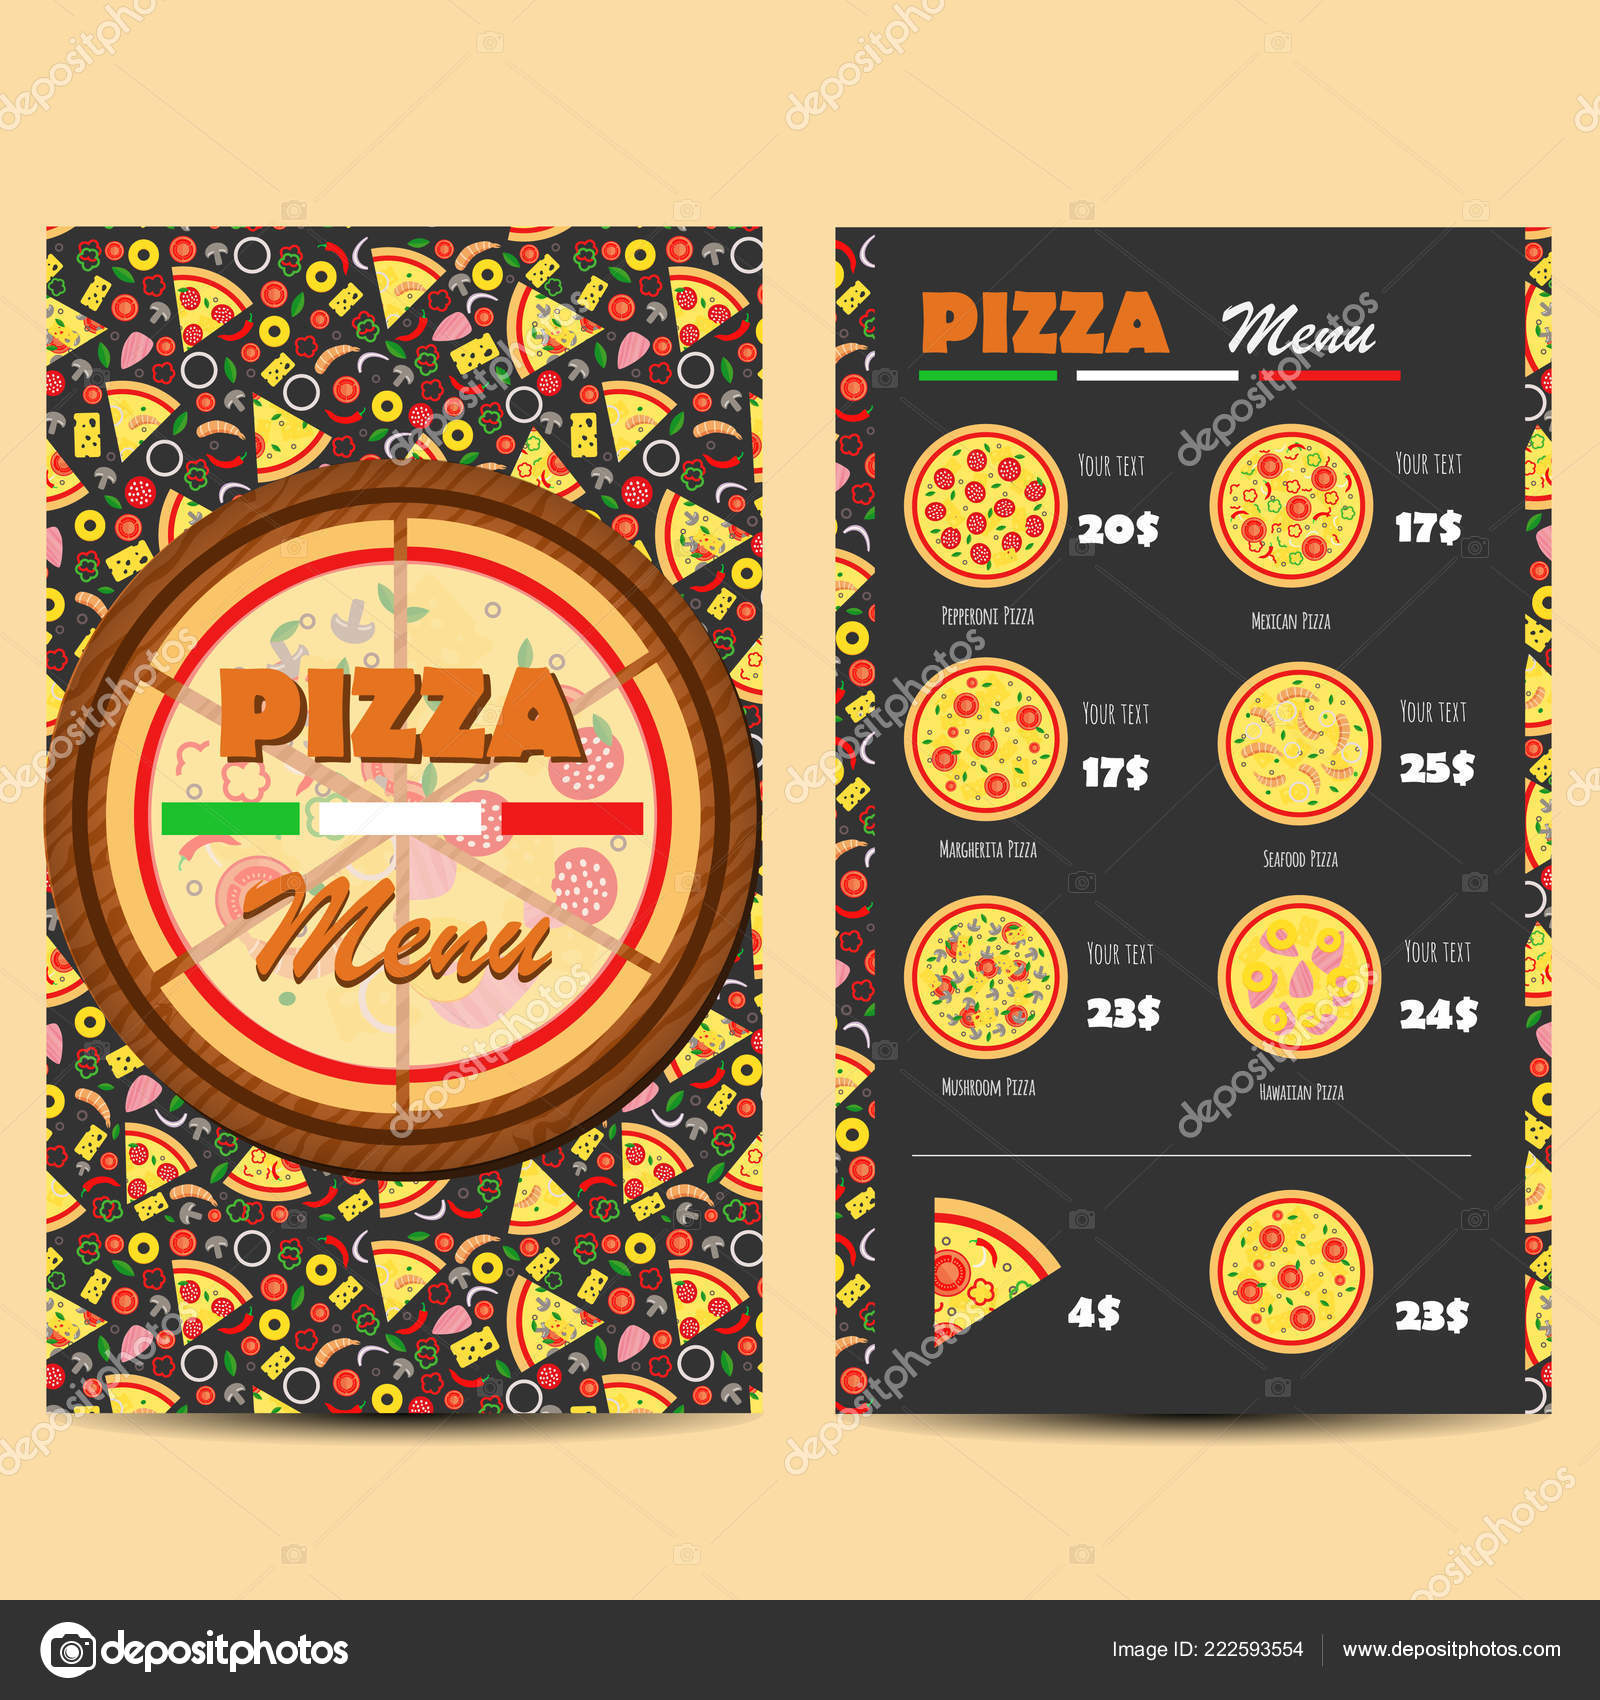 Pizza Menu Design Leaflet Flyer Layout Template Restaurant Menu Vector Stock Vector C Yanabolbot Gmail Com 222593554